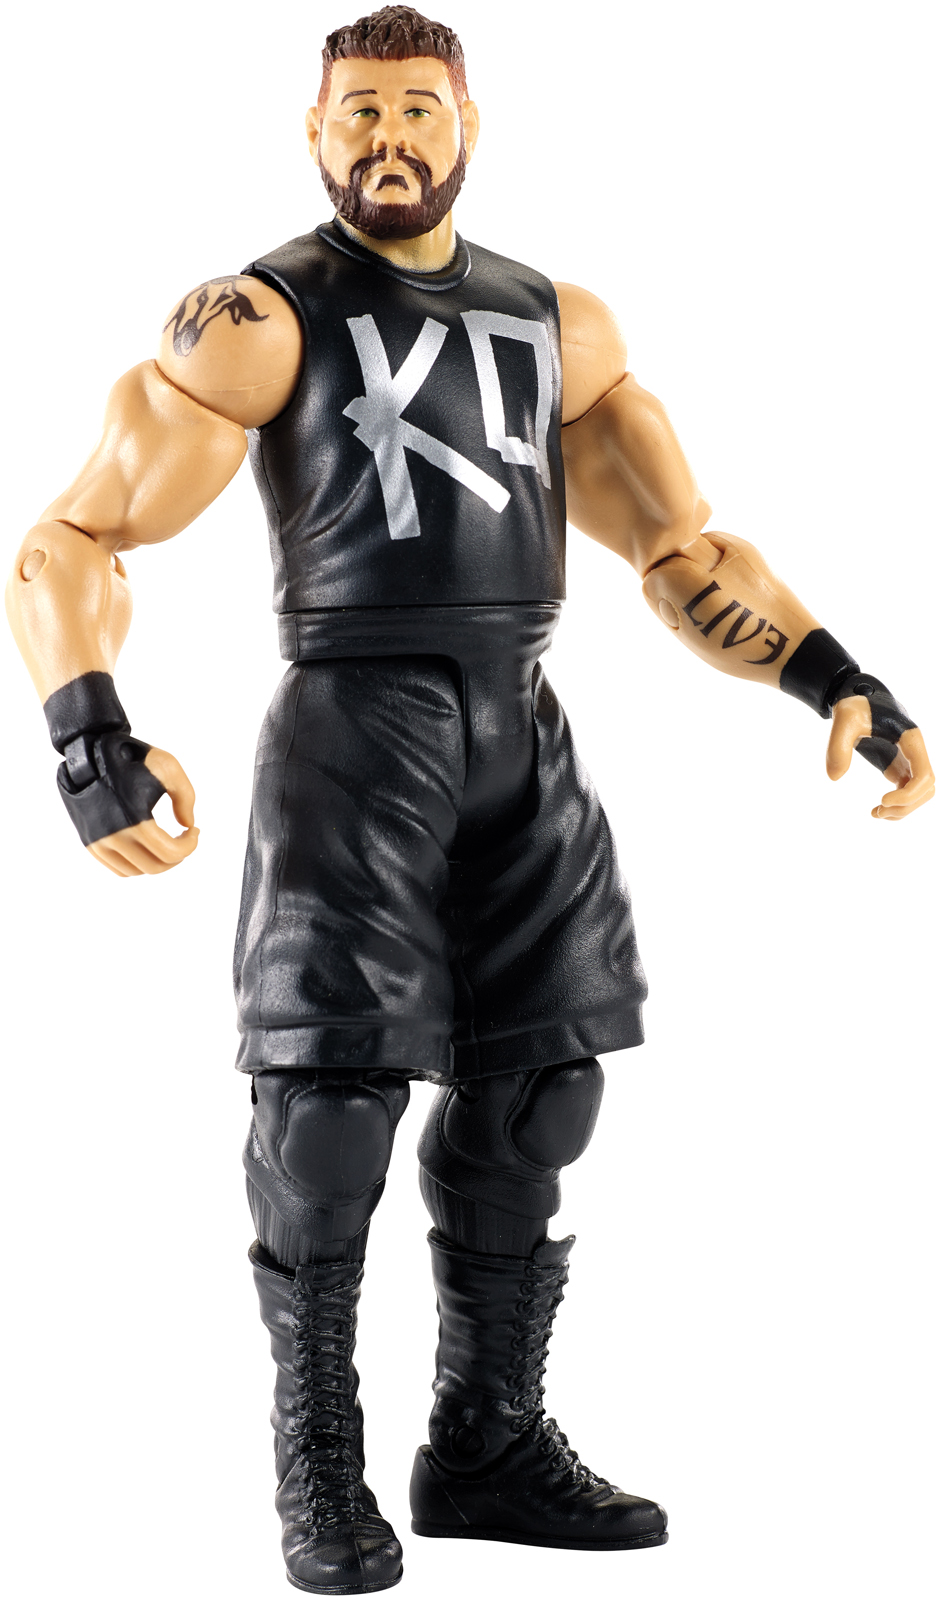 Wwe Kevin Owens - Series 58 Toy Wrestling Action Figure